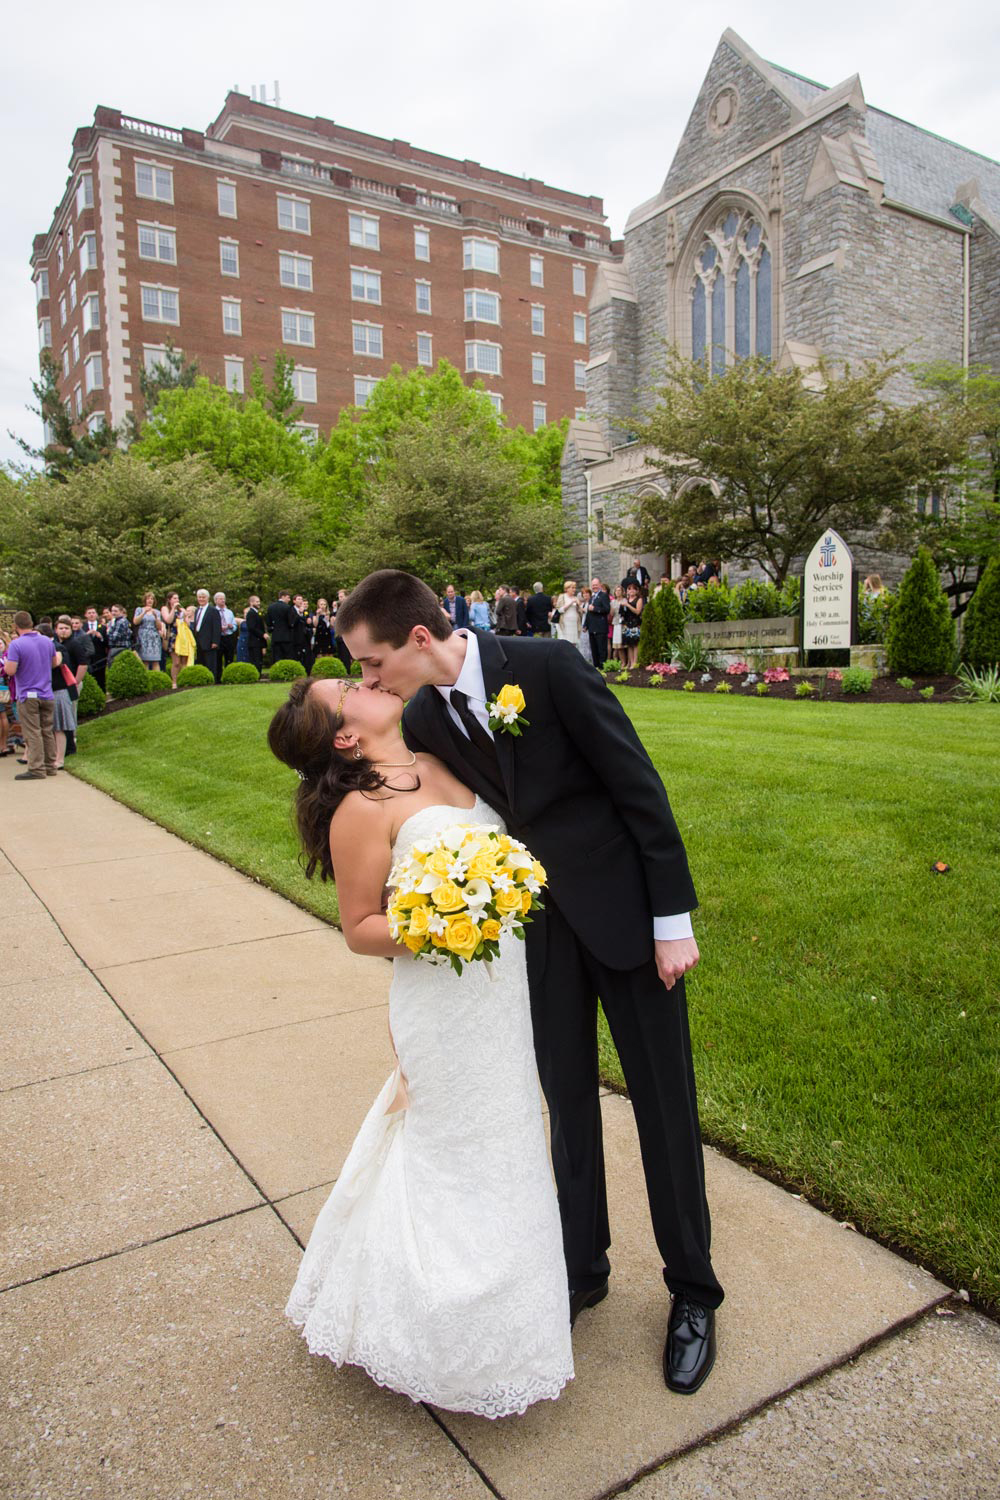 wedding-photographer-scott-walz-studio-walz205.jpg